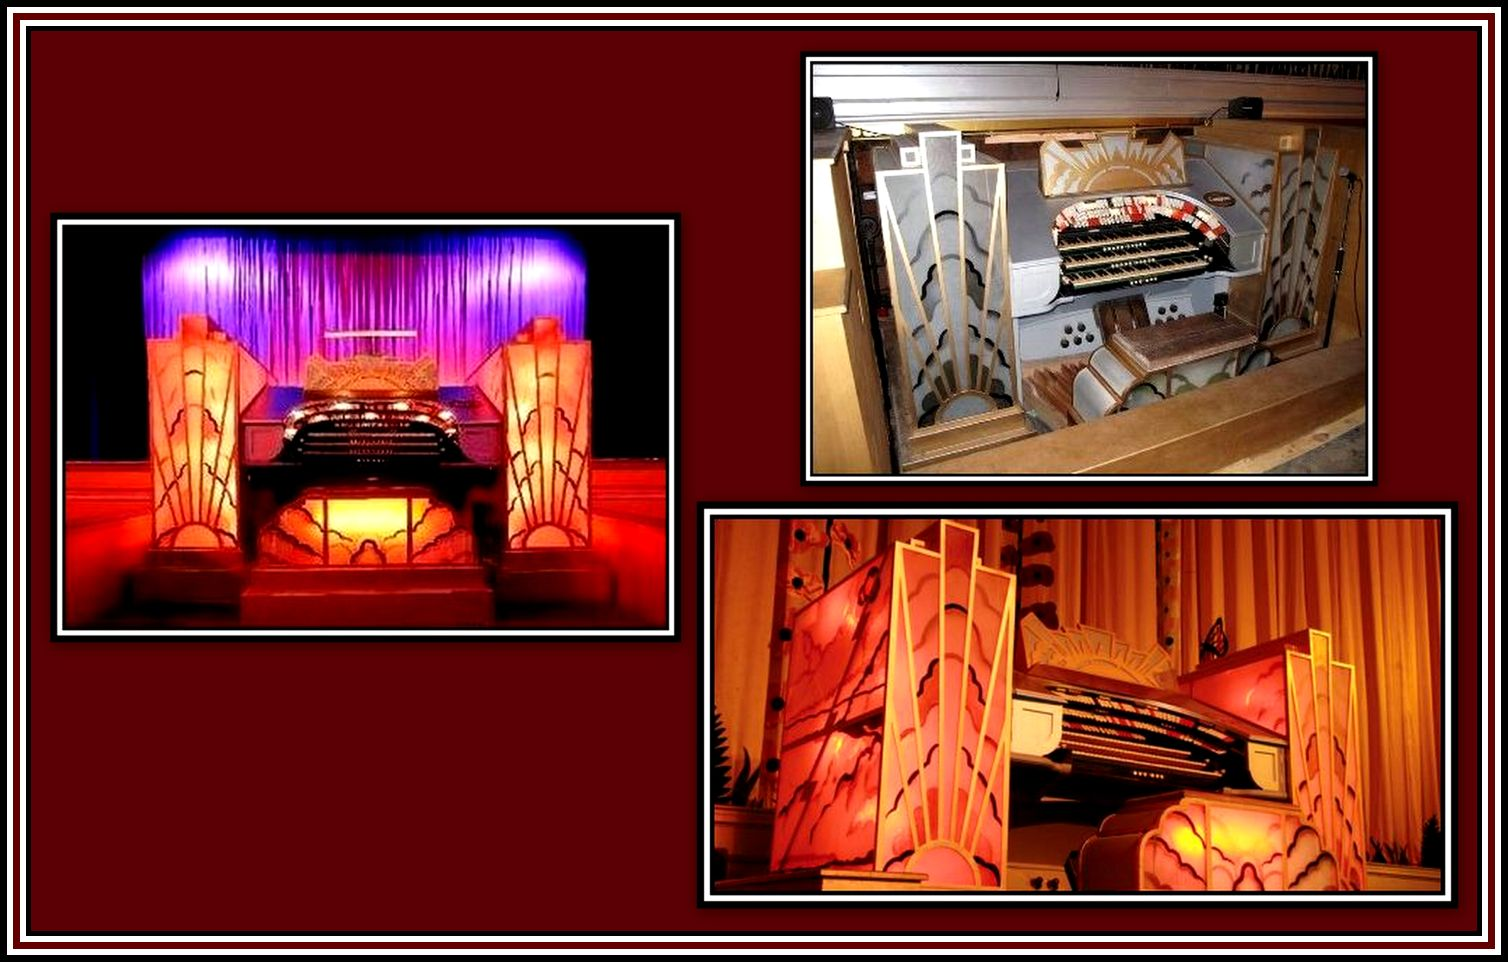 The Organ Plaza Stockport Collage